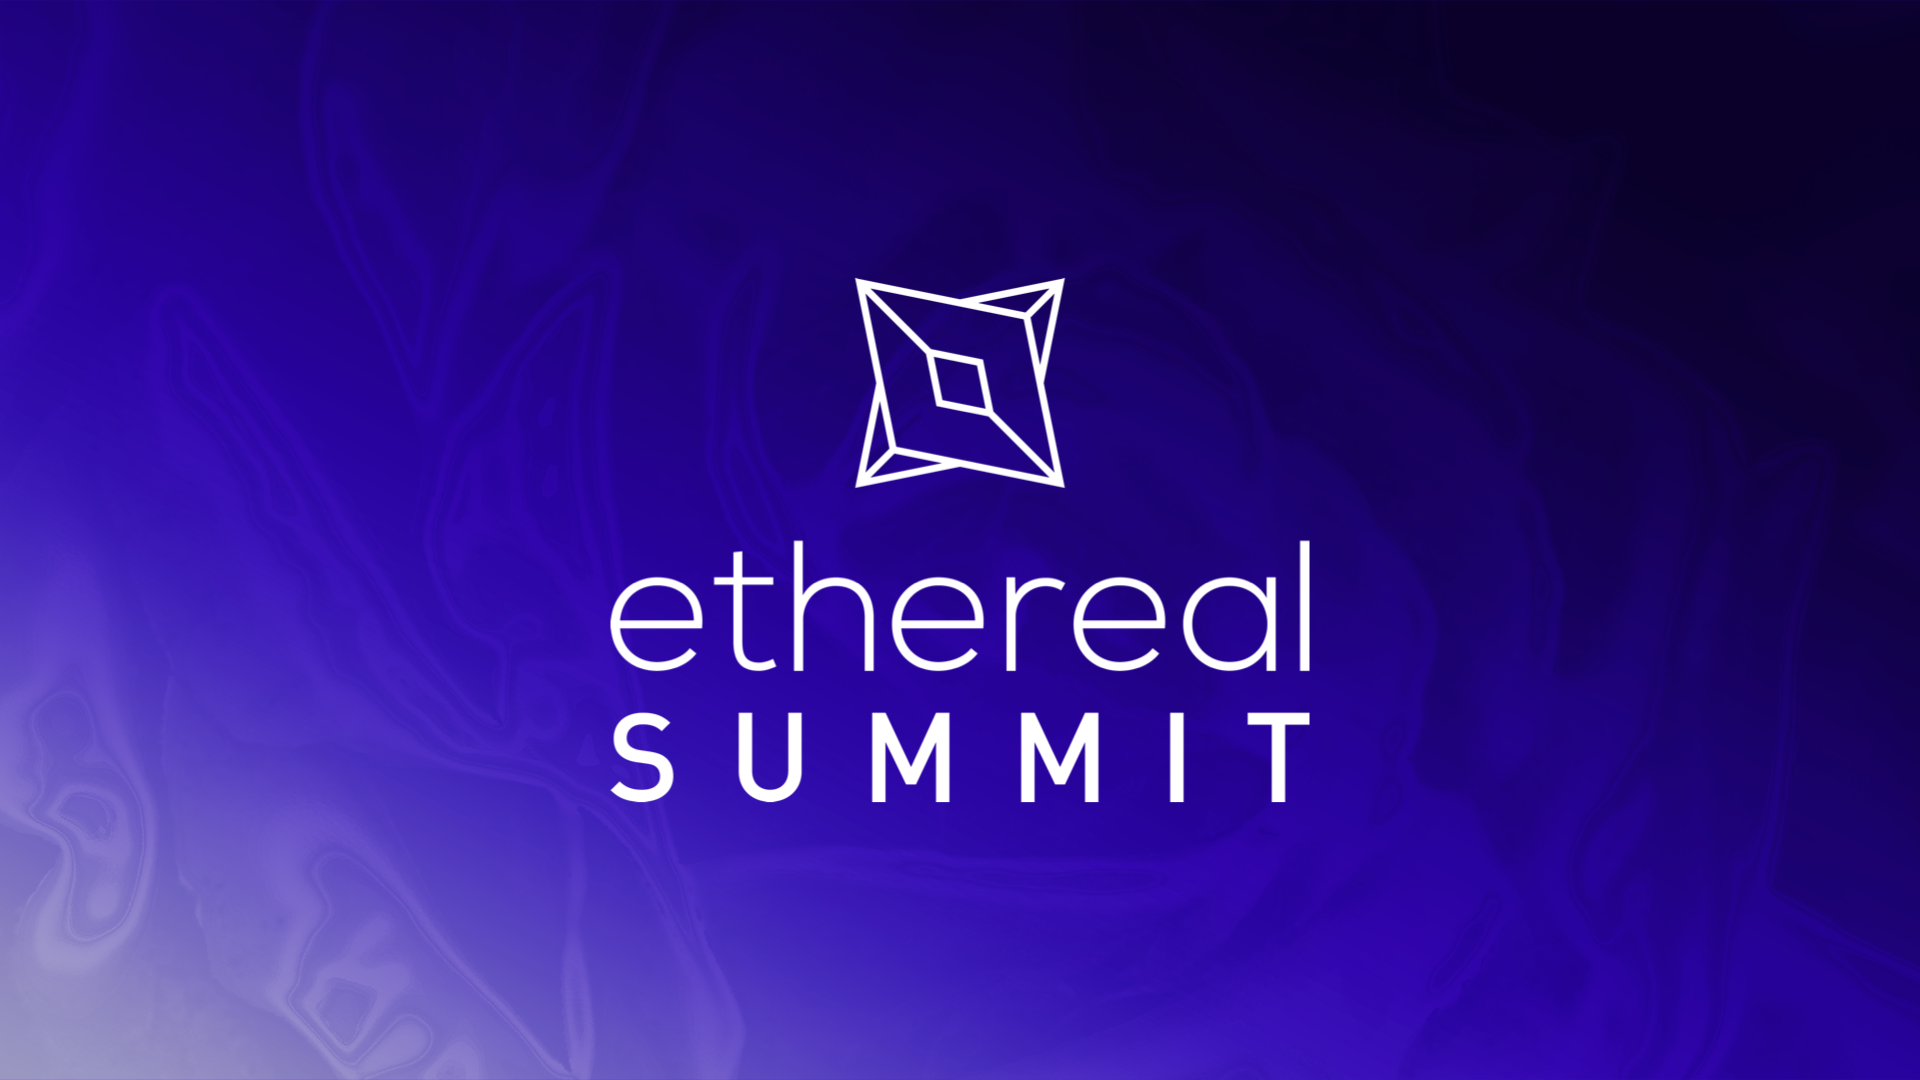 Ethereal Summit NY 2019 - Design / Creative Direction